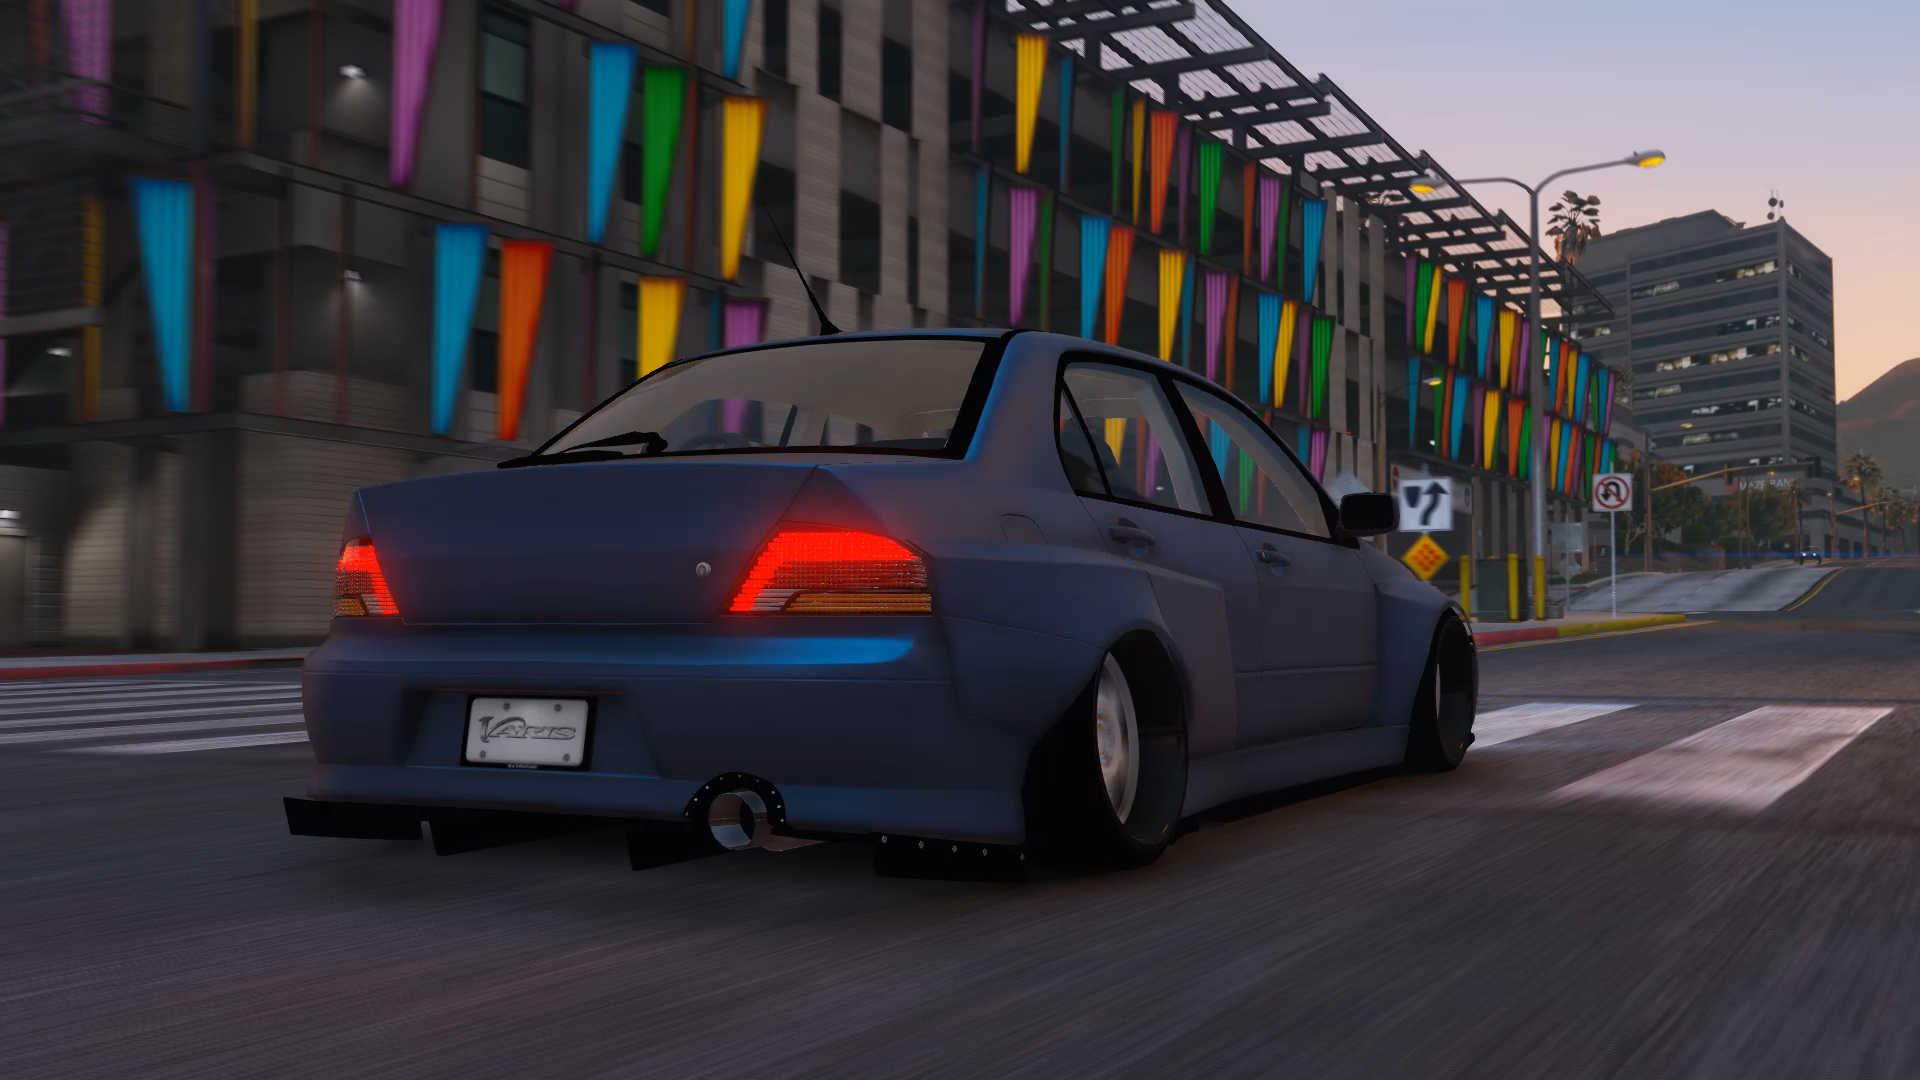 2006 Mitsubishi Lancer Evolution Clinched - GTA5-Mods com